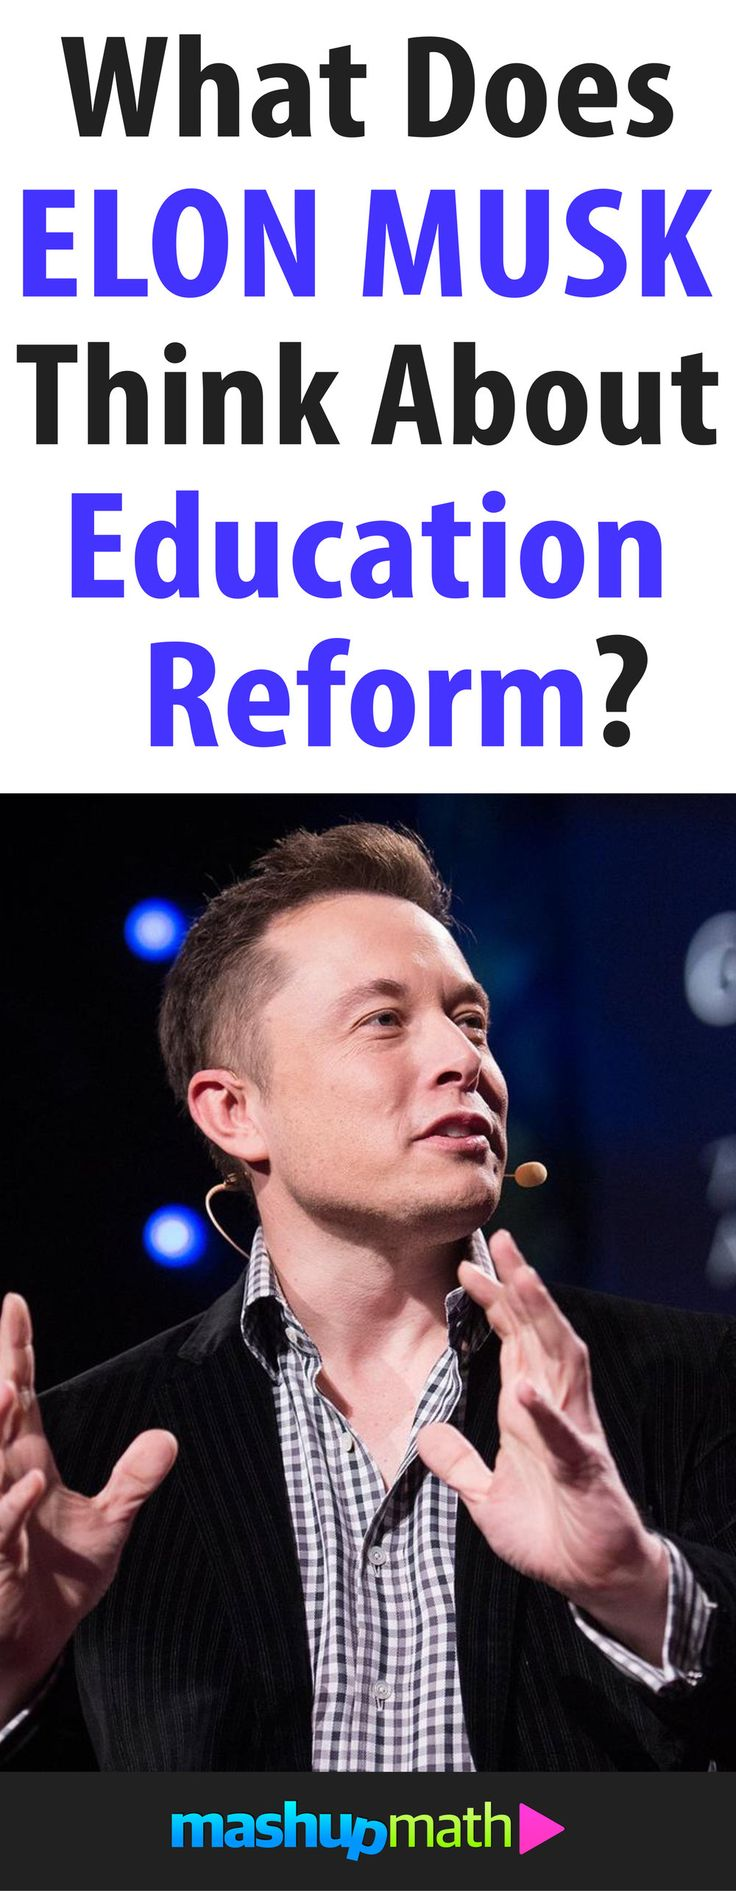 Here are the best quotes from Elon Musk during a recent interview on education reform and how to teach math.